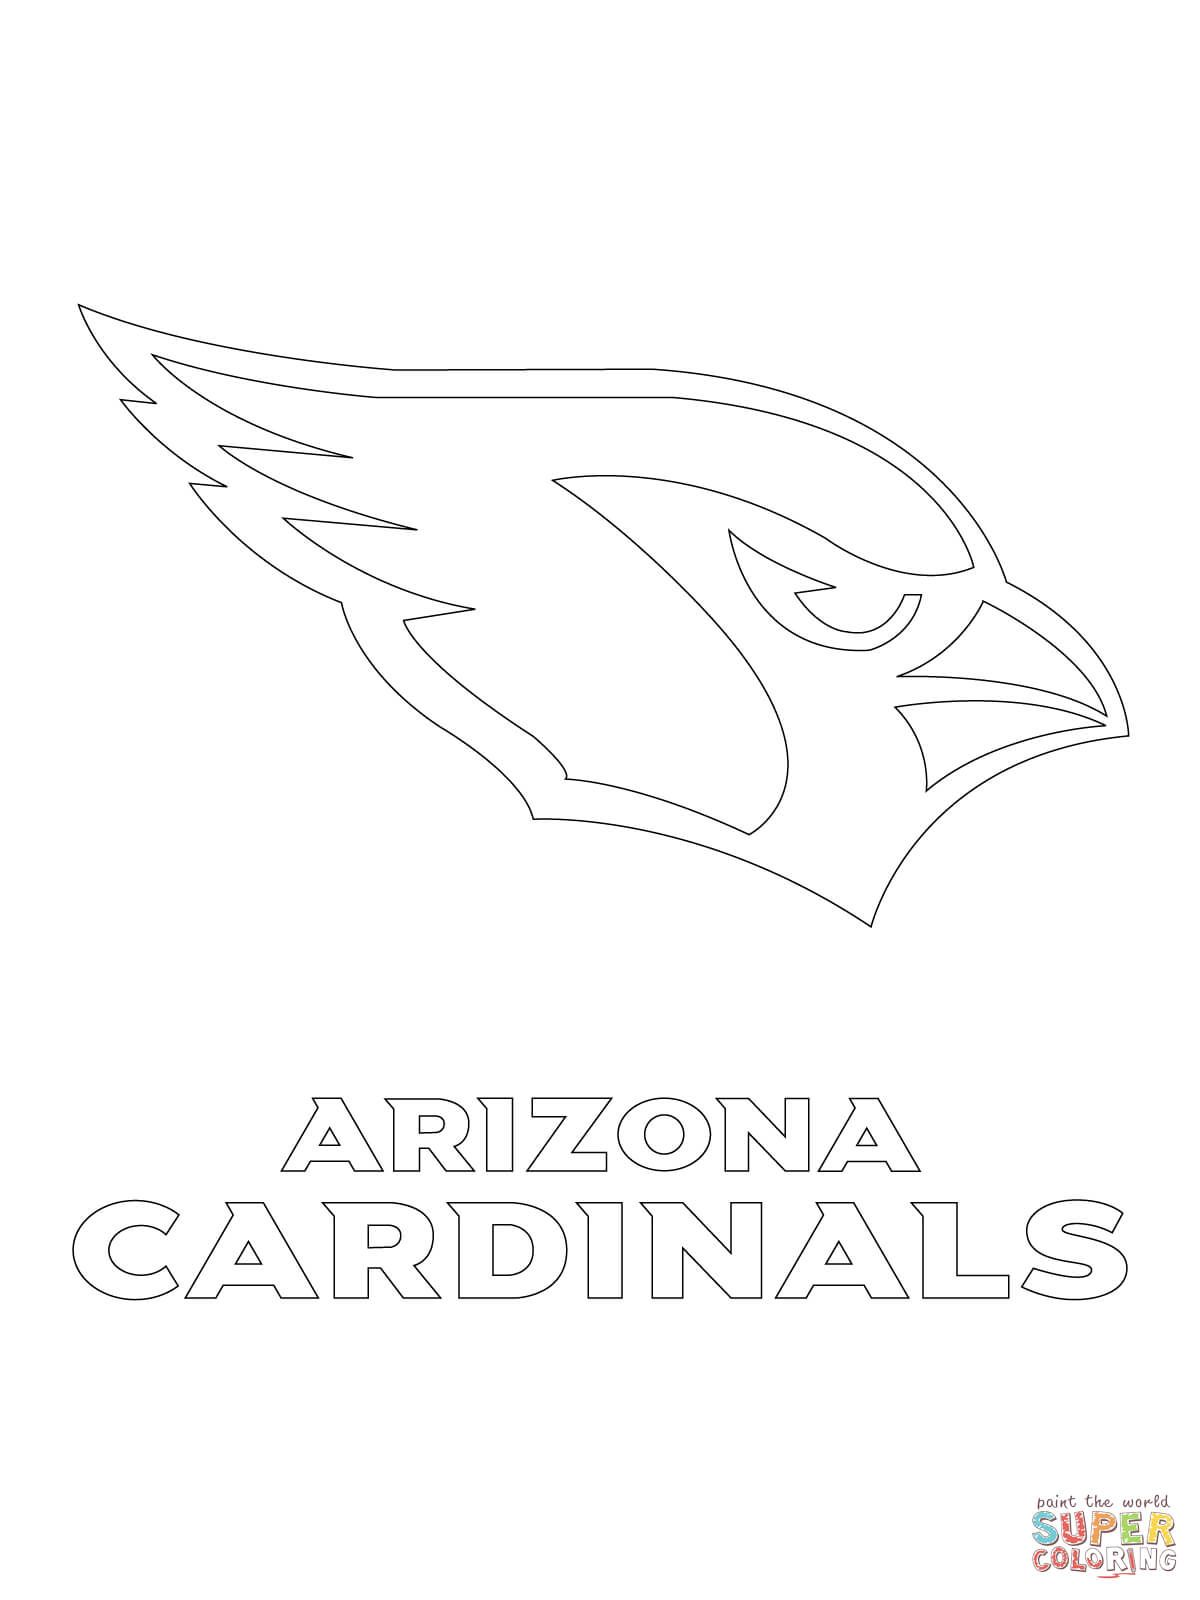 Arizona Cardinals Logo Coloring Page Free Printable Coloring Pages Football Coloring Pages Arizona Cardinals Logo Printable Coloring Pages